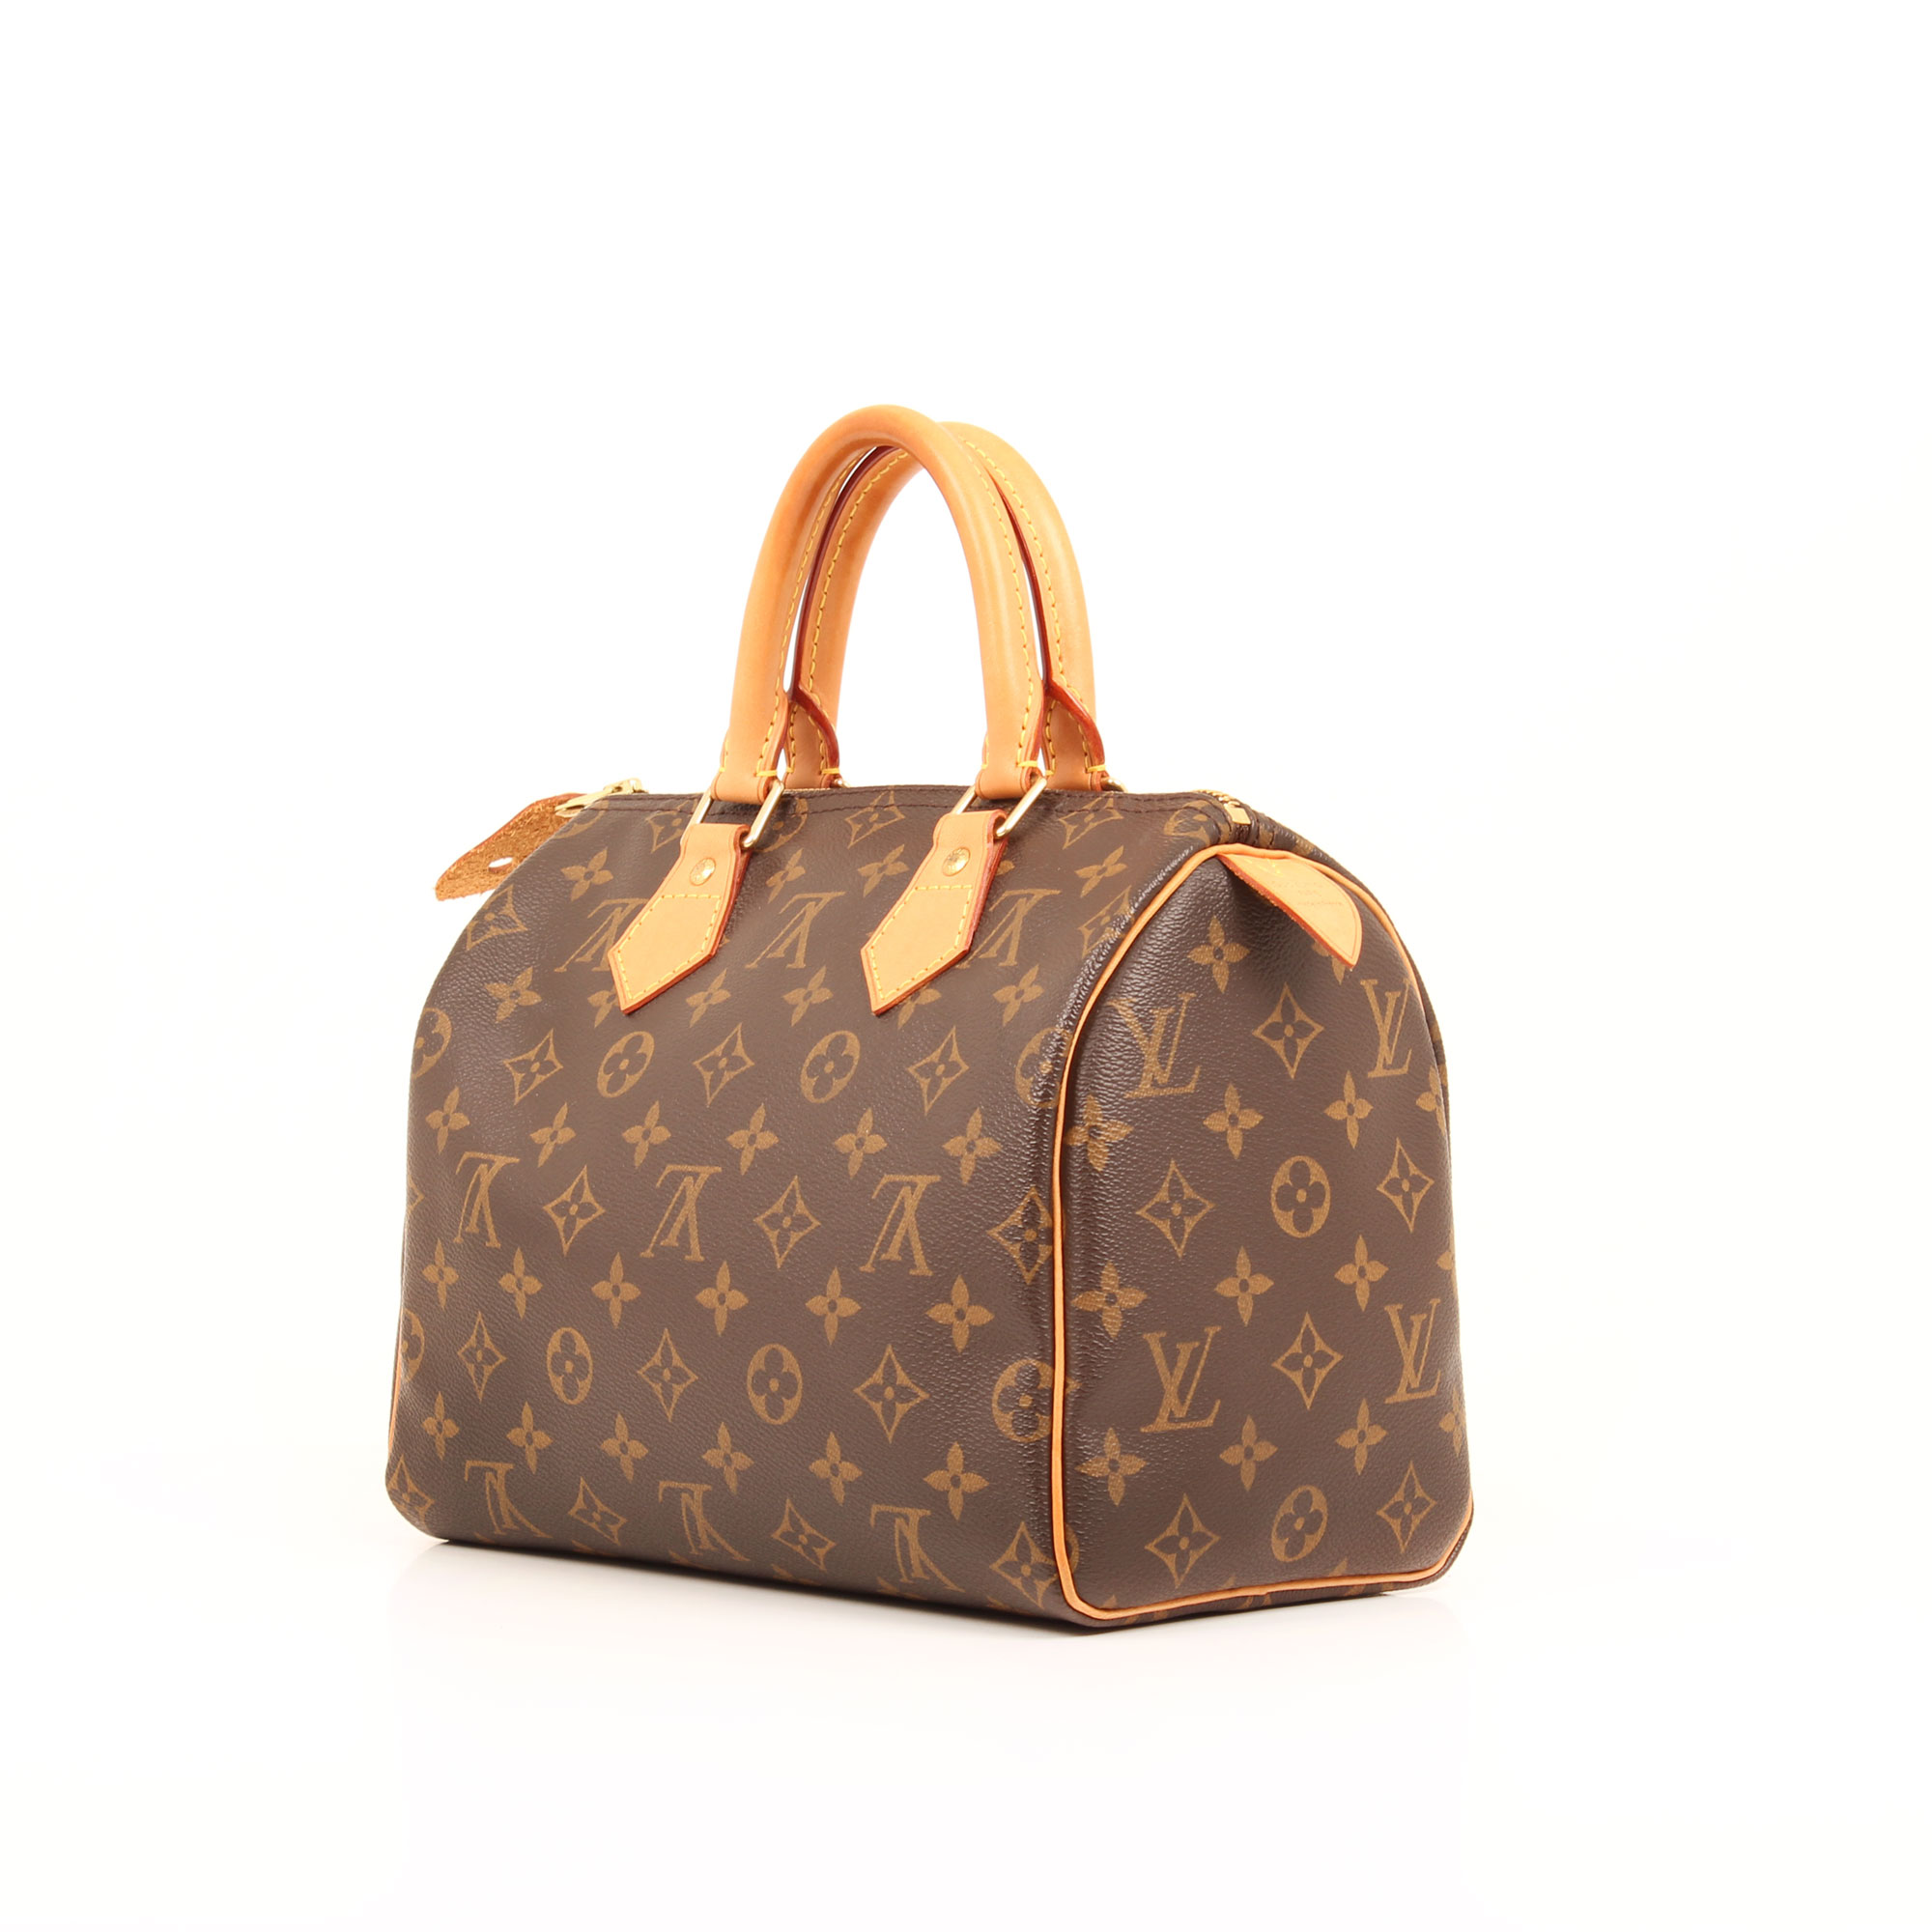 Imagen general del bolso louis vuitton speedy 25 monogram